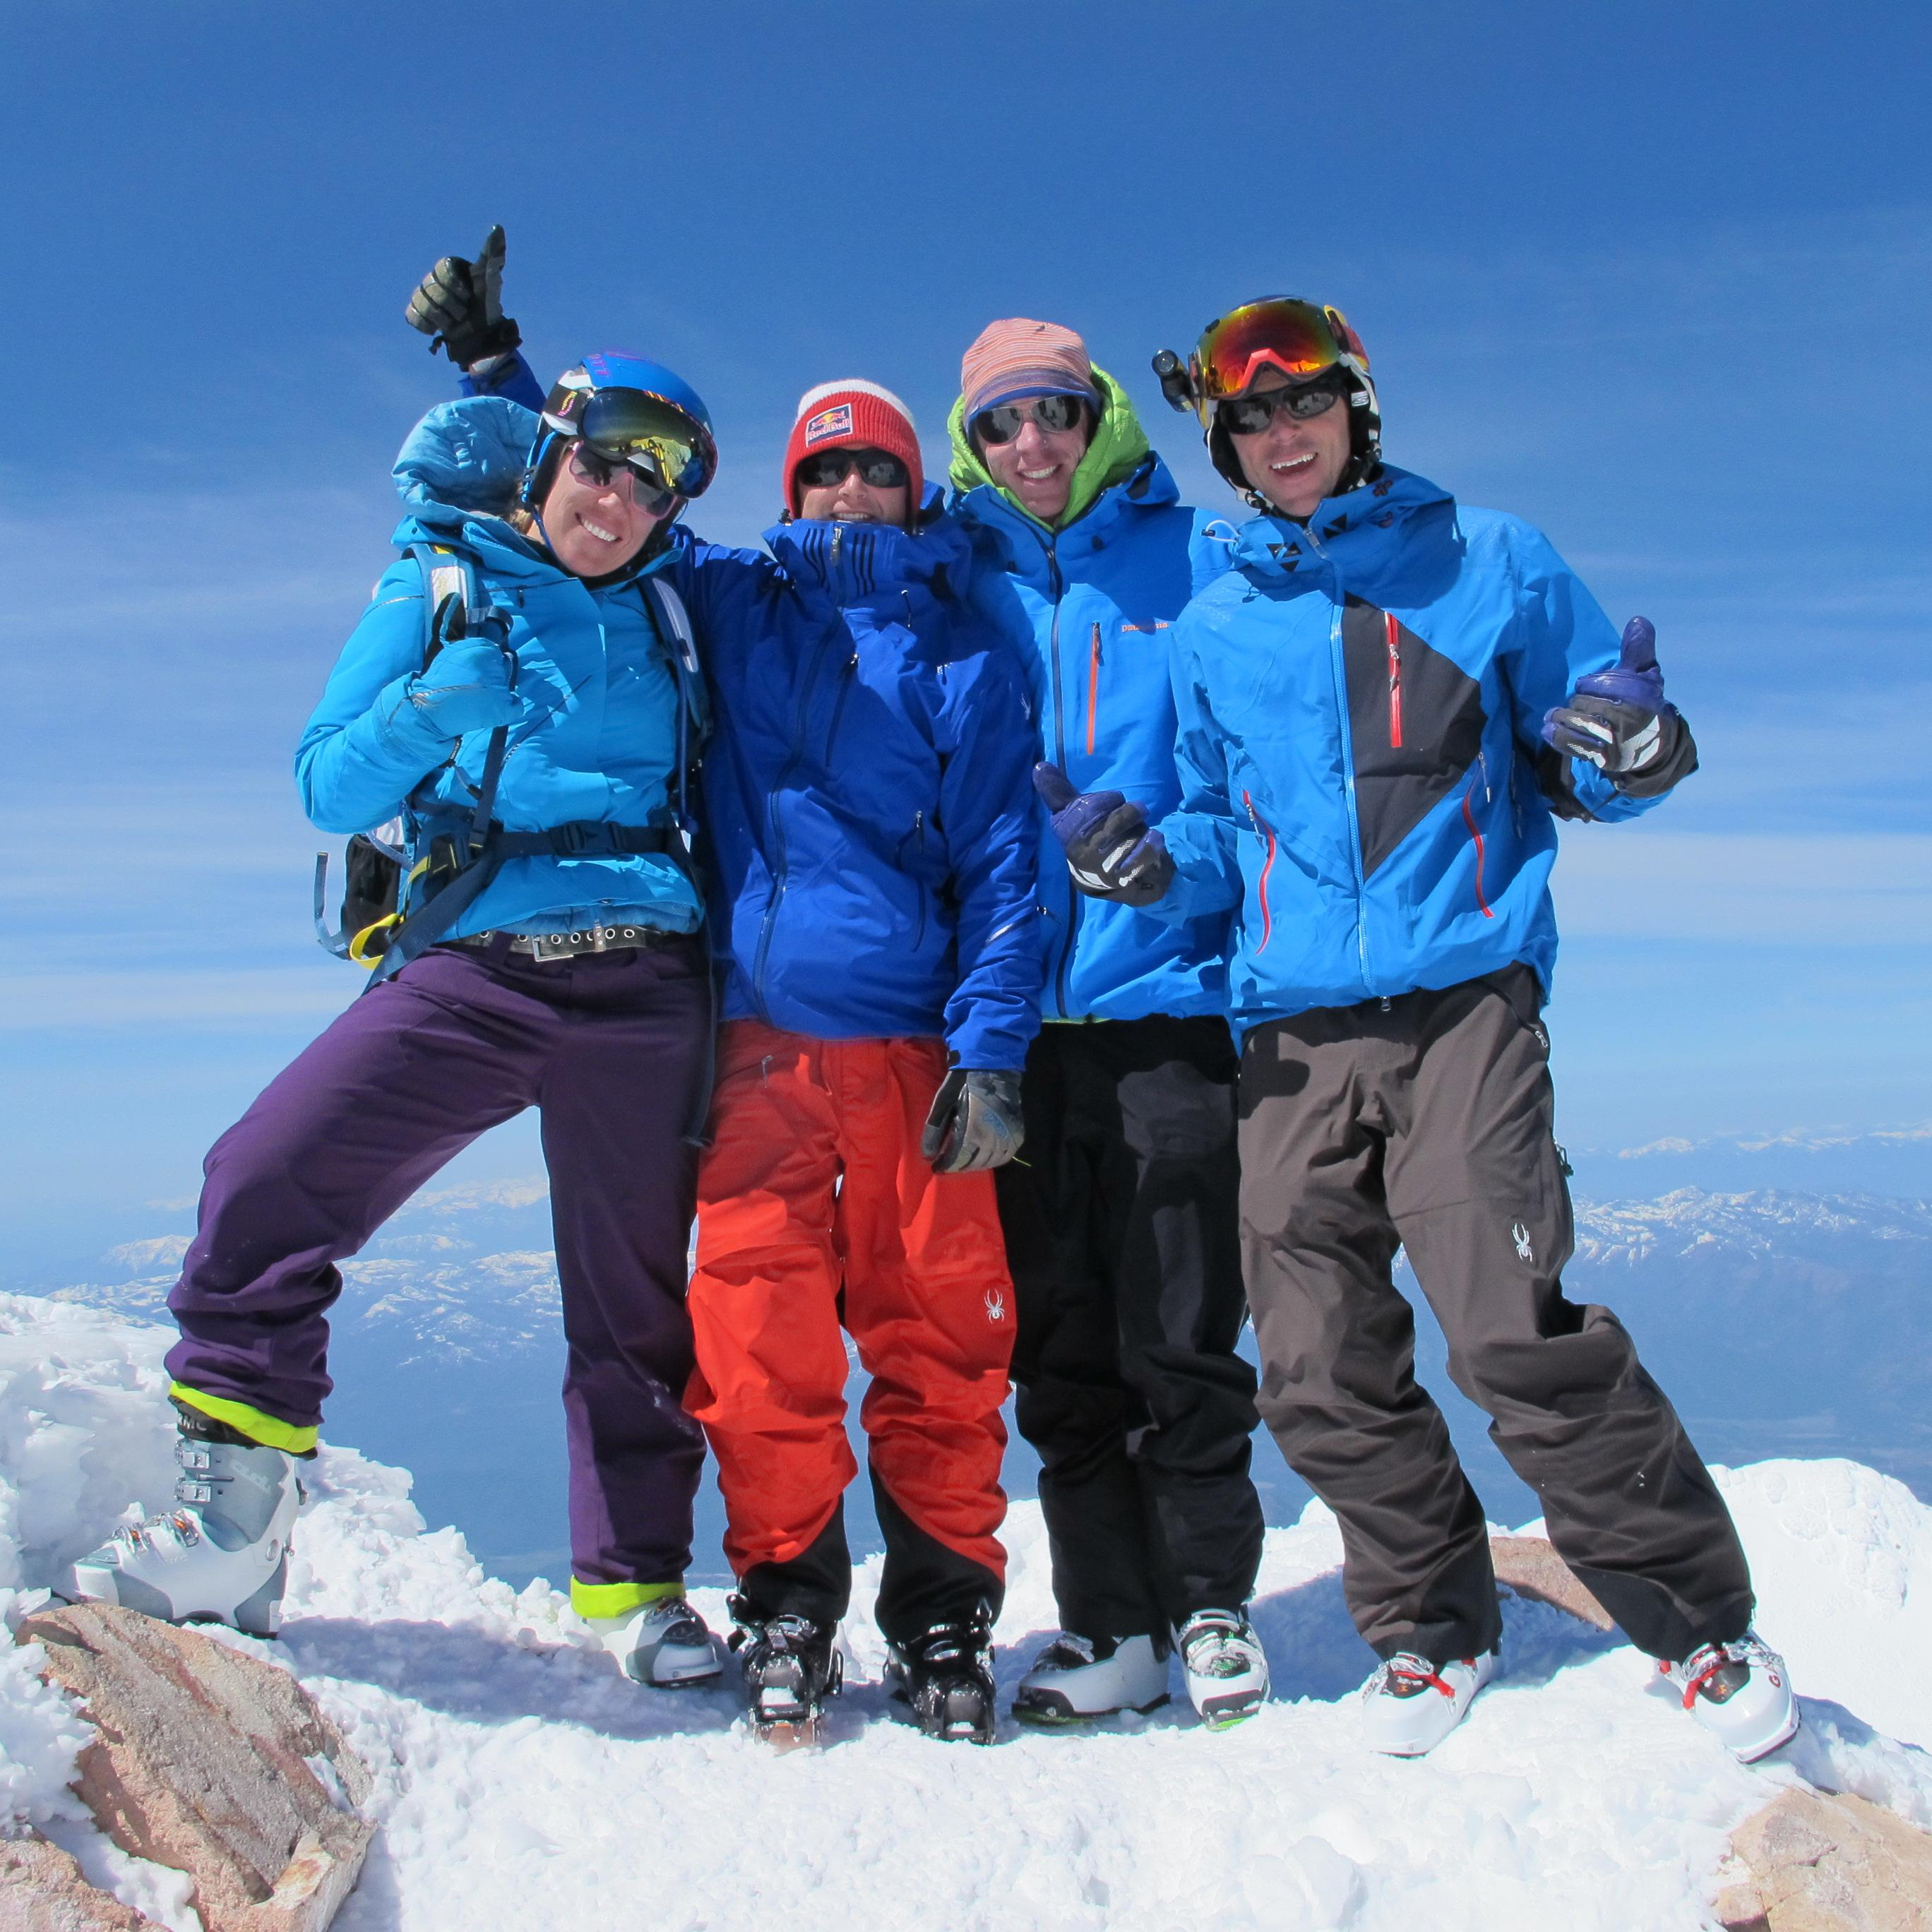 Chris Carr, Jim Morrison, Jess McMillan, and Chris Davenport on top of Mount Shasta